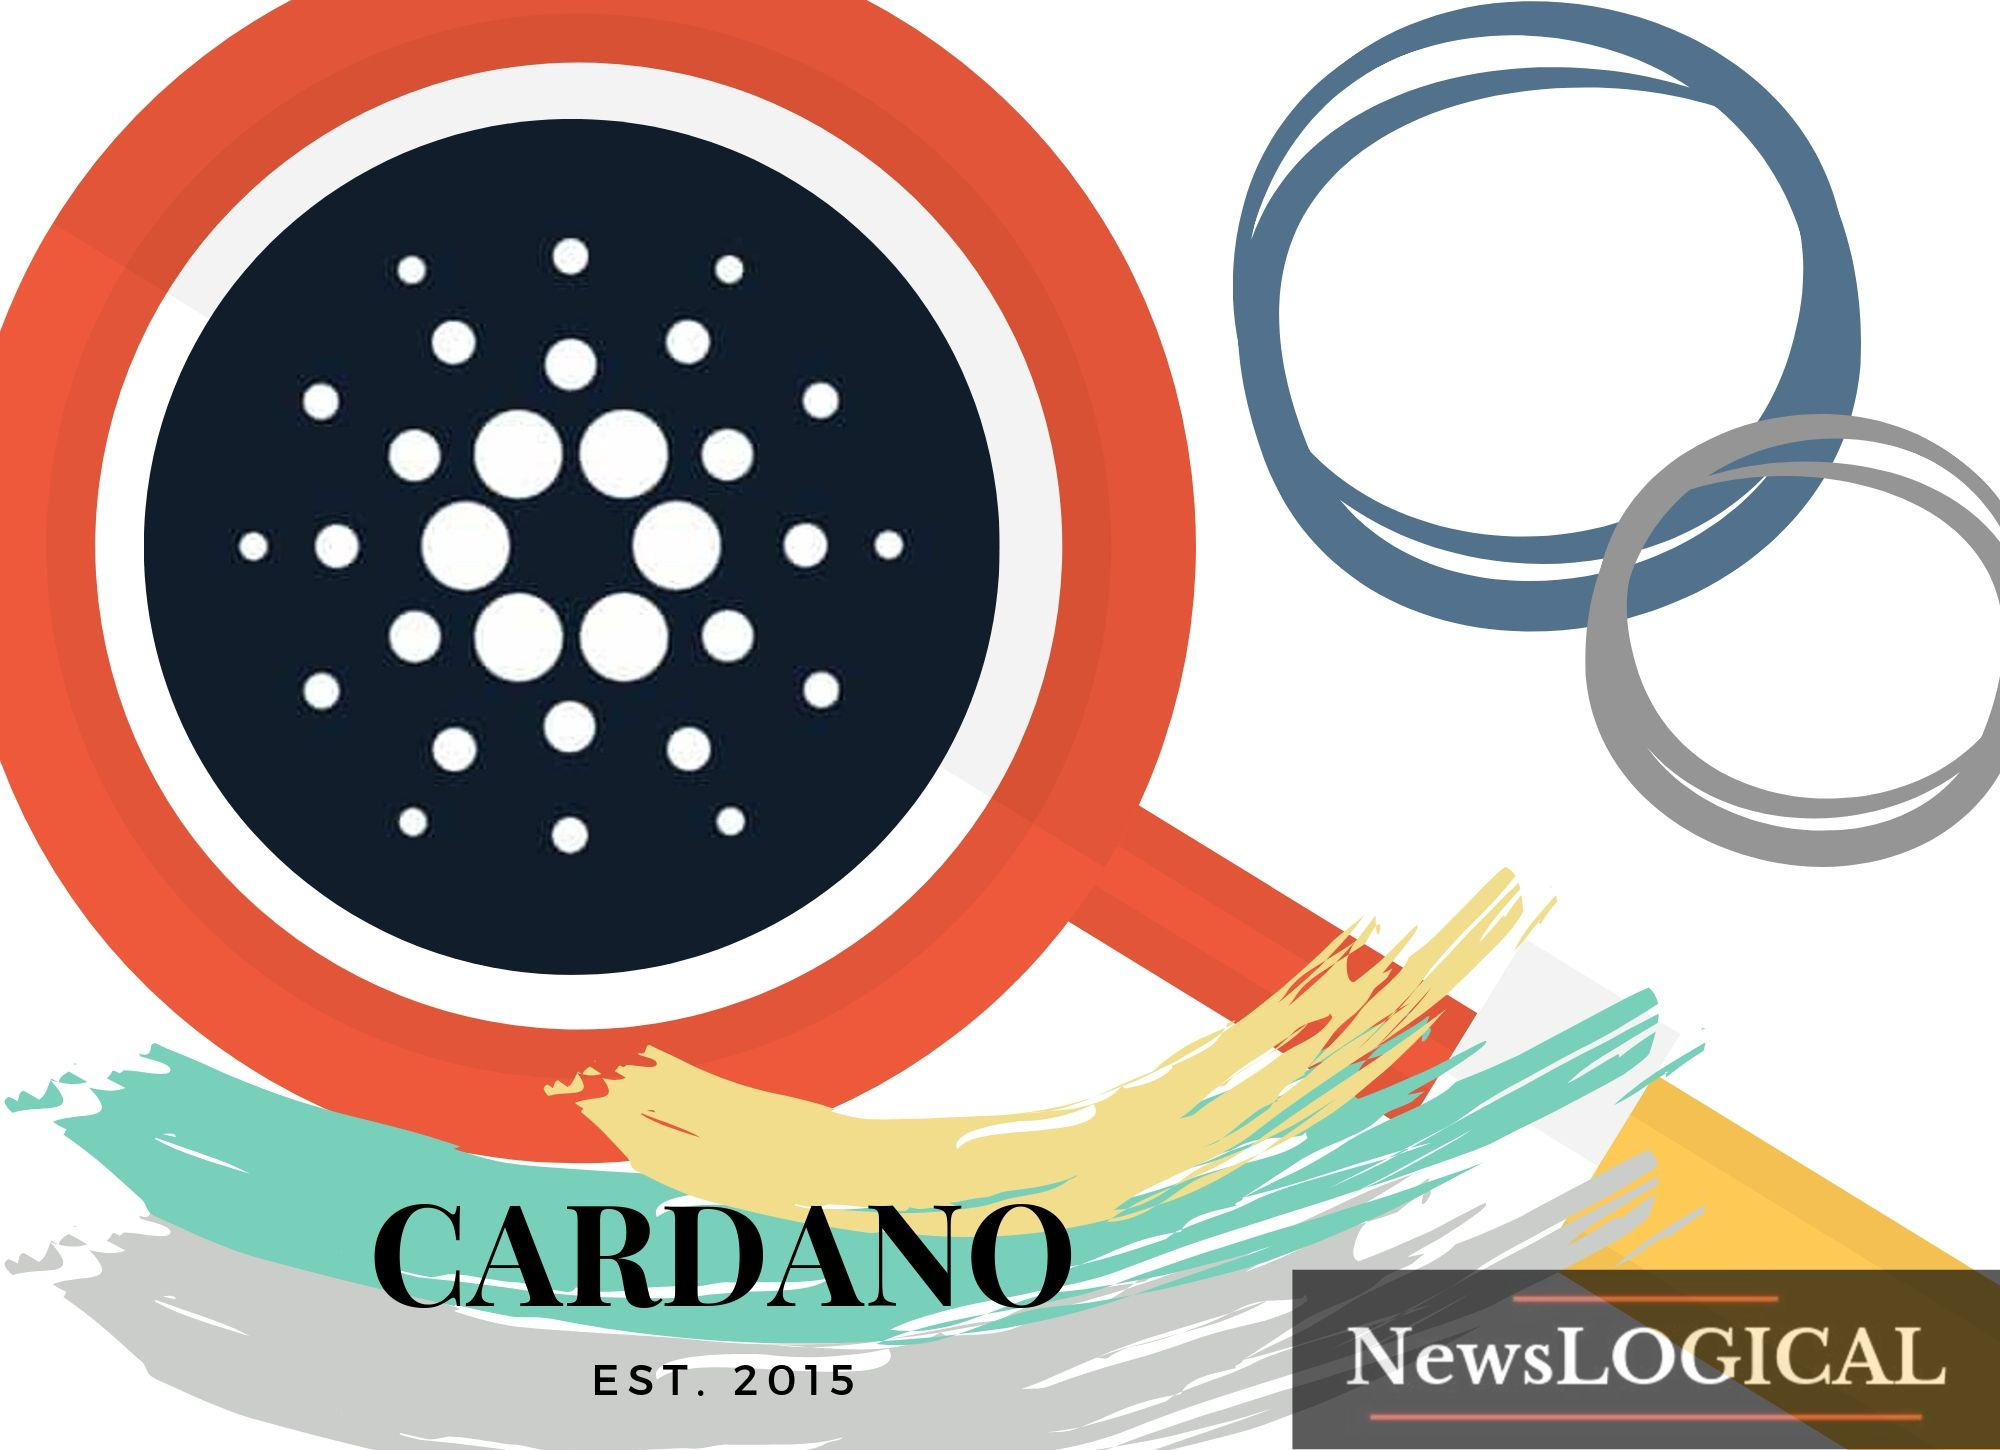 Cardano's Shelly Goes Live after a Successful Test Run in London